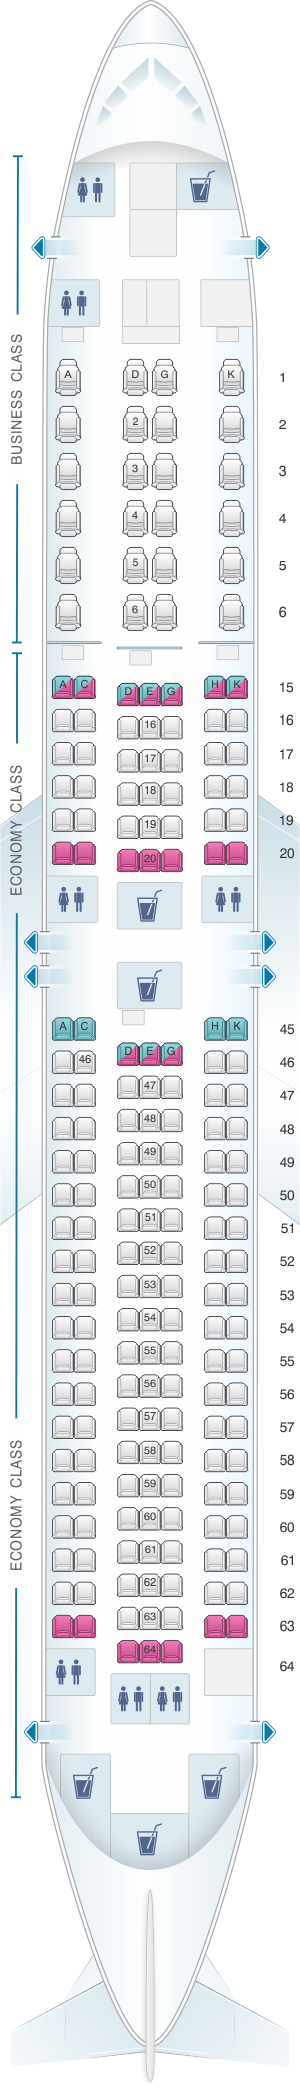 Seat map for Japan Airlines (JAL) Boeing B767 300ER A44